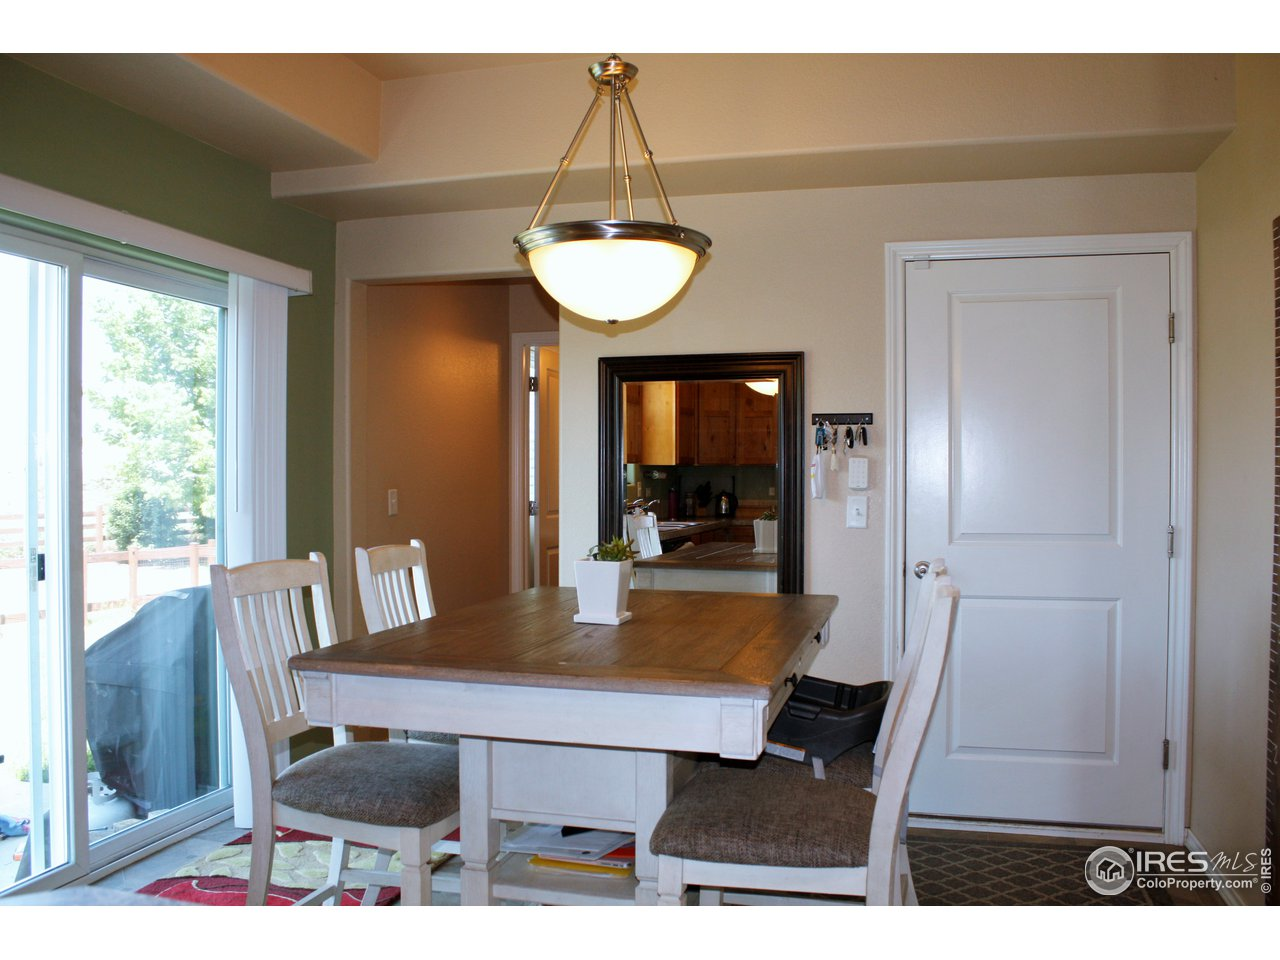 Dining room off of kitchen with garage door to right